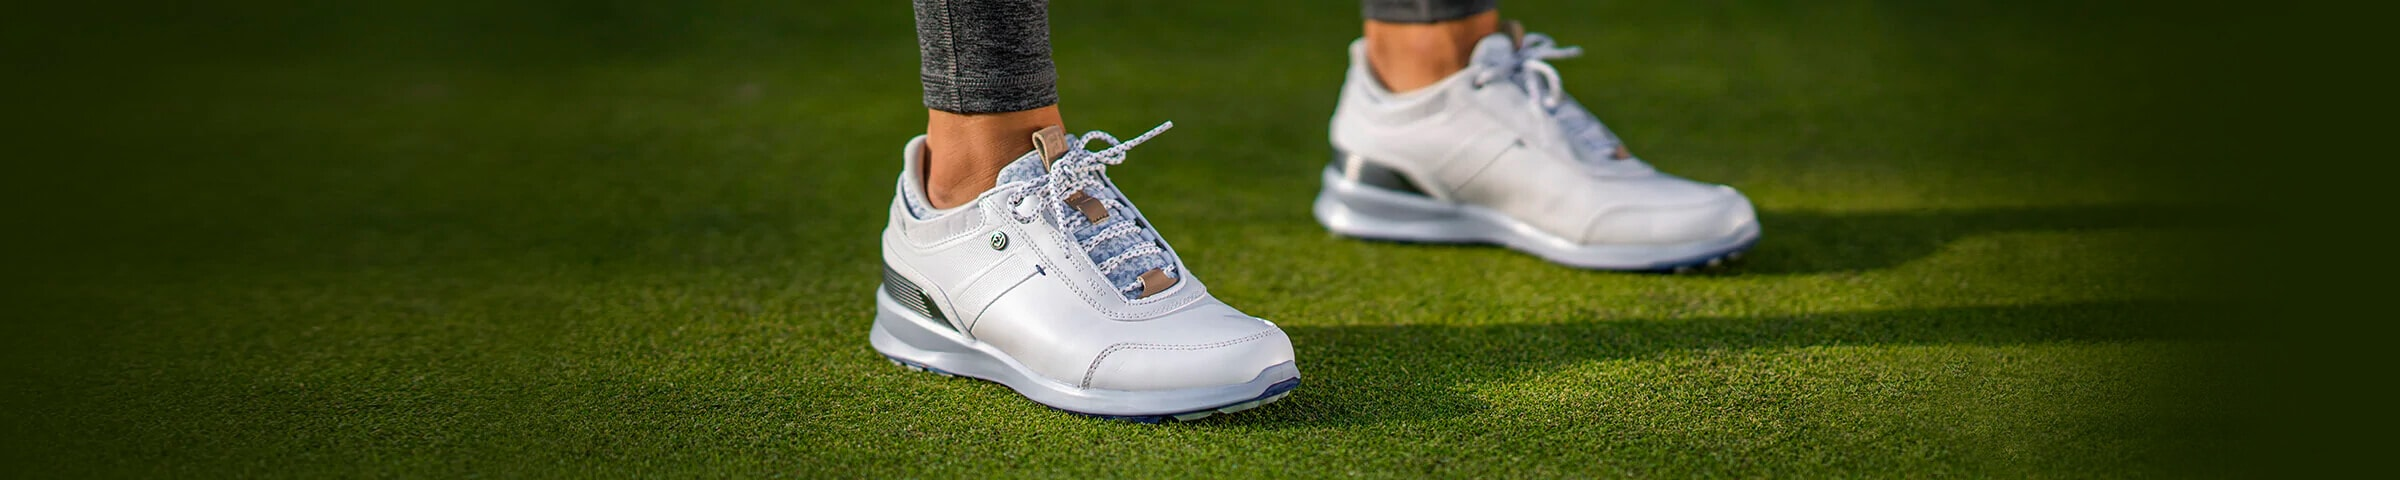 FootJoy Women's Spikeless Shoes